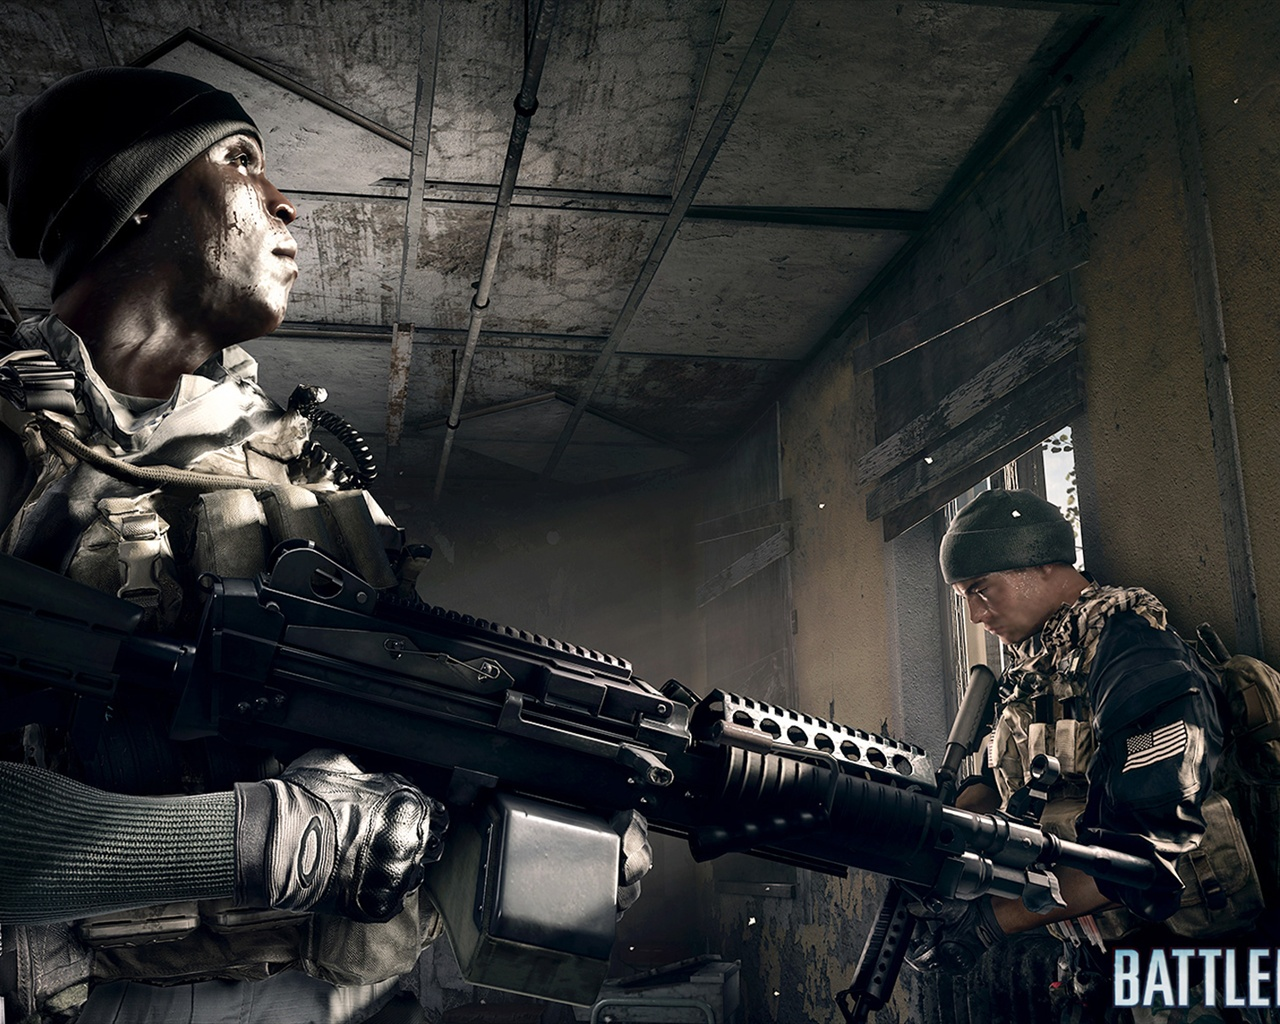 Download Wallpaper 1280x1024 Battlefield 4 Soldiers In